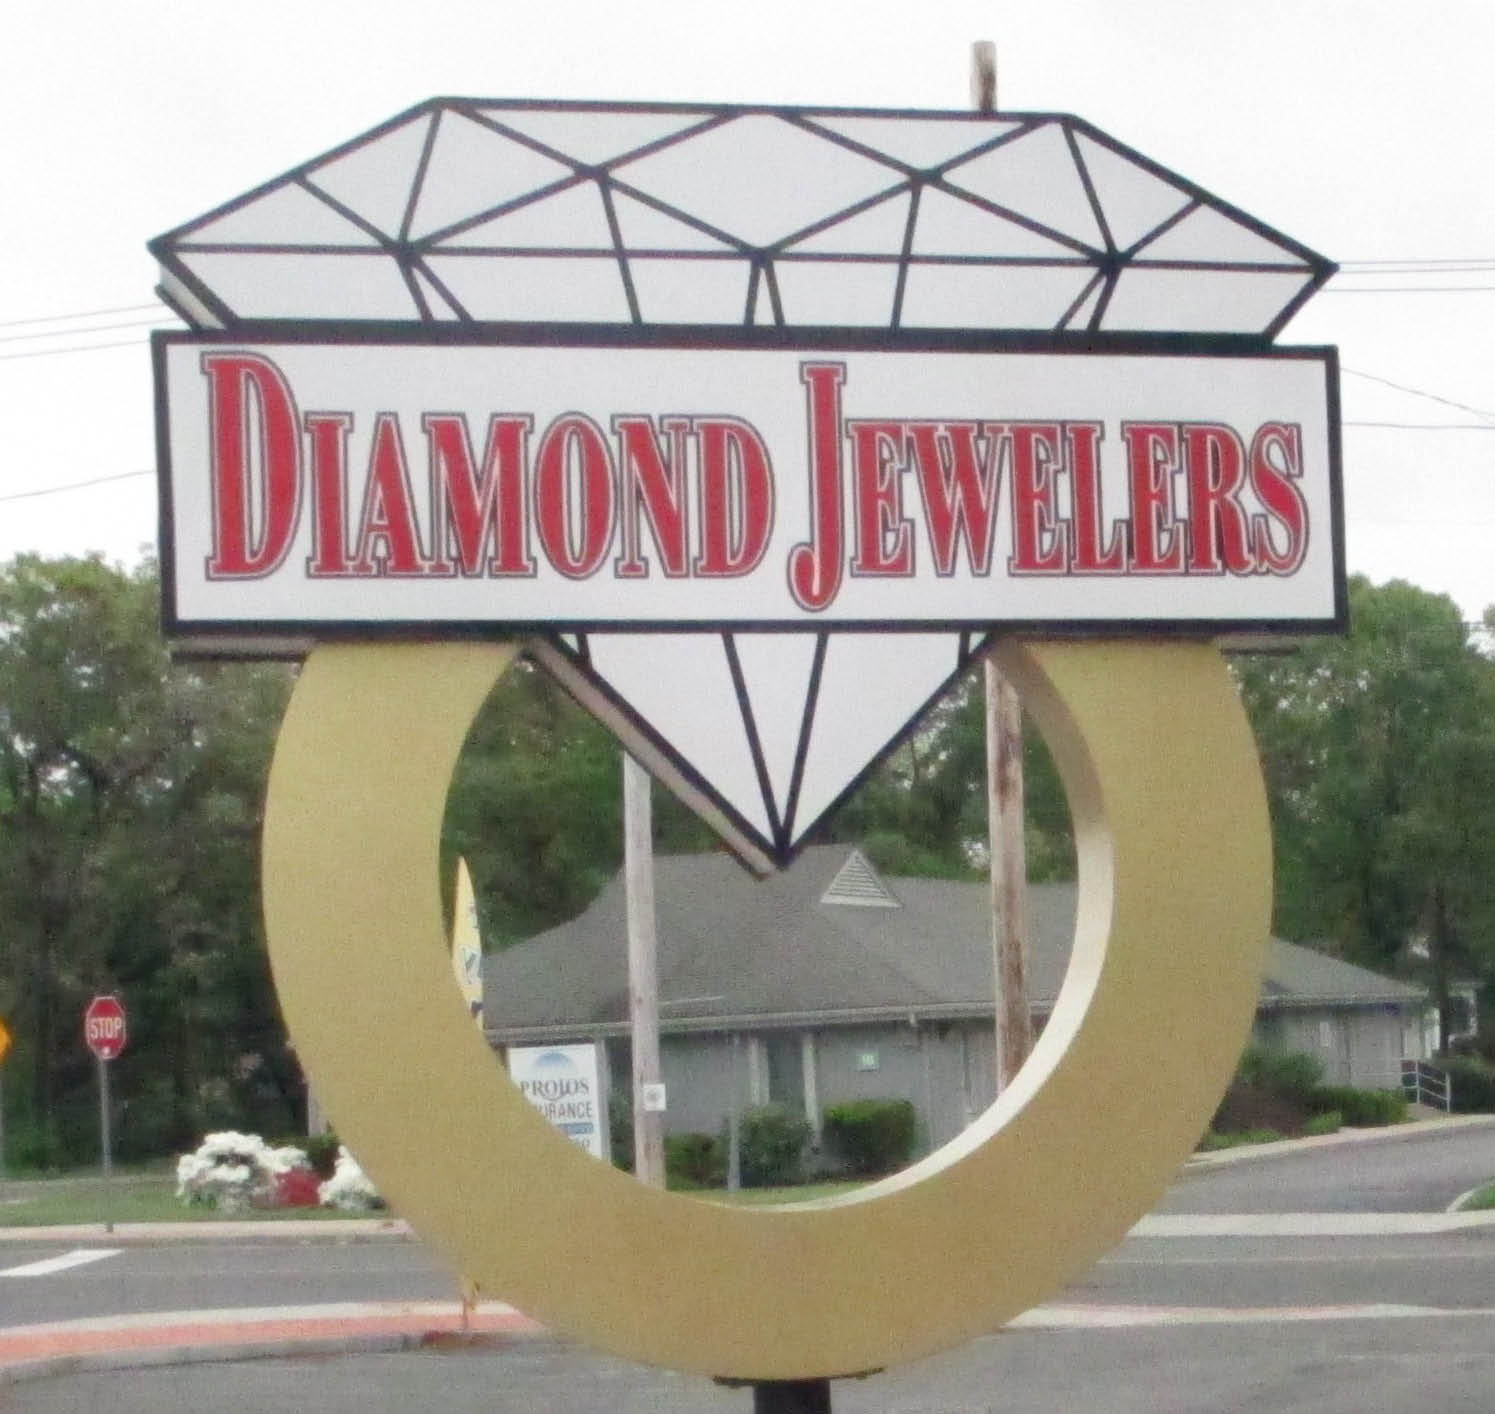 Diamonds, Gemstones, Fine Jewelry, Watches, Estate & Antique Jewelry, silver, coins,Engagement Rings, Jewelry Repair, Gold, Appraisals, Jared